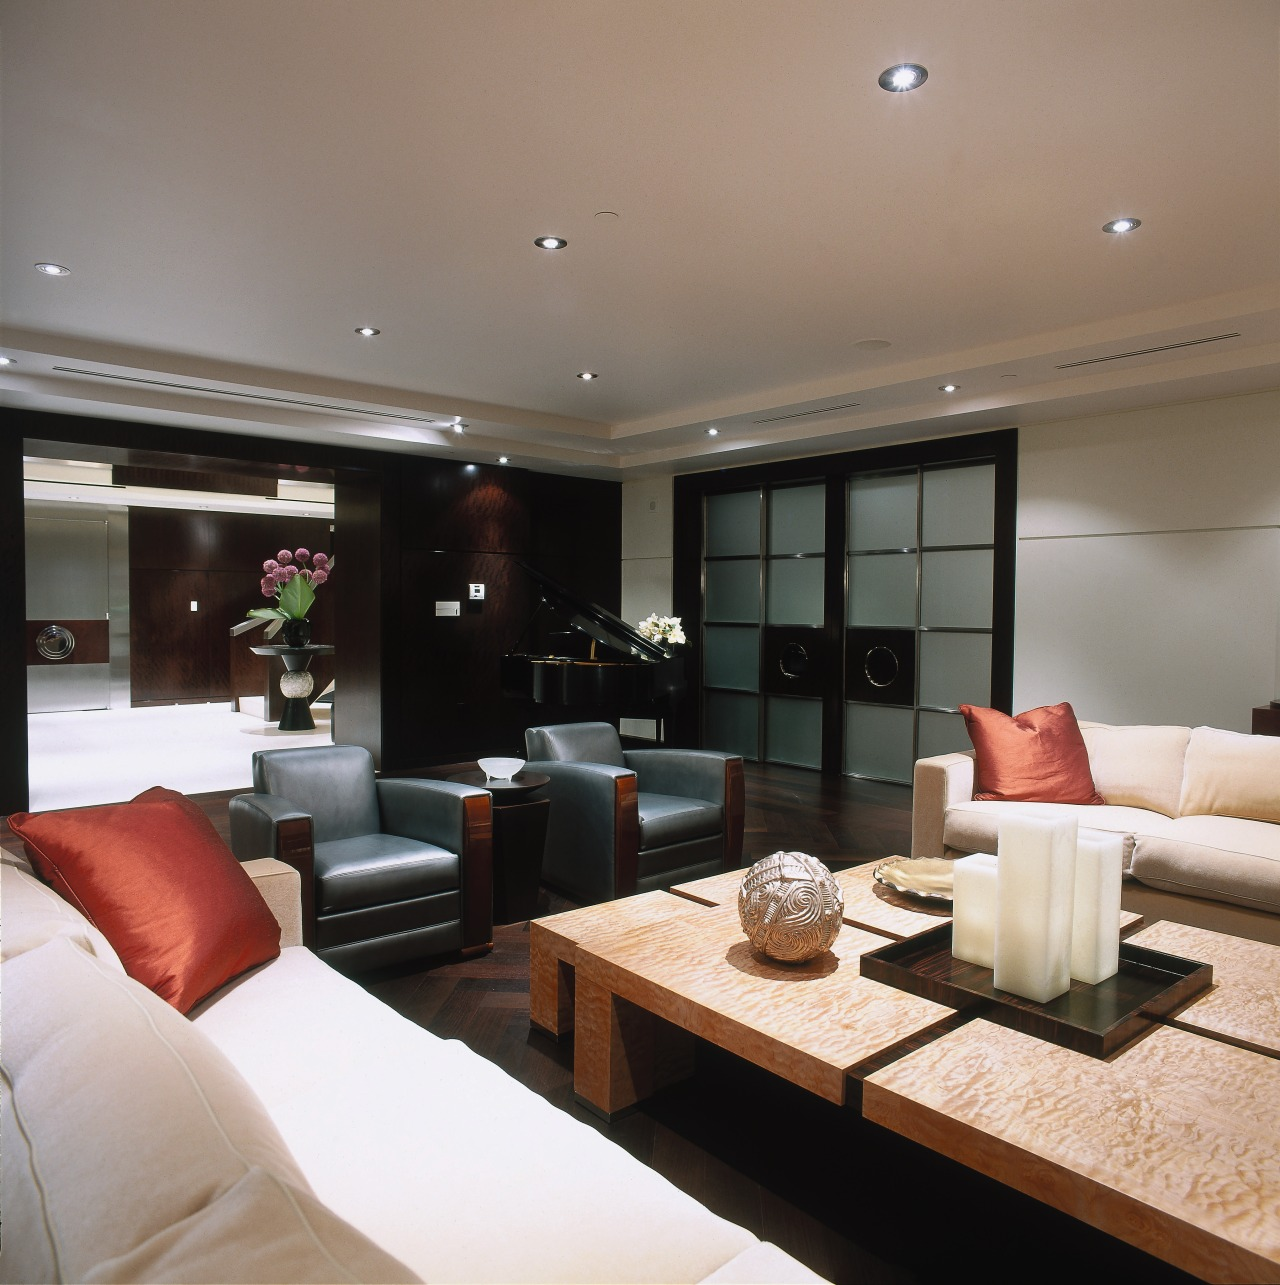 Overview of the lounge area ceiling, interior design, living room, property, real estate, room, gray, black